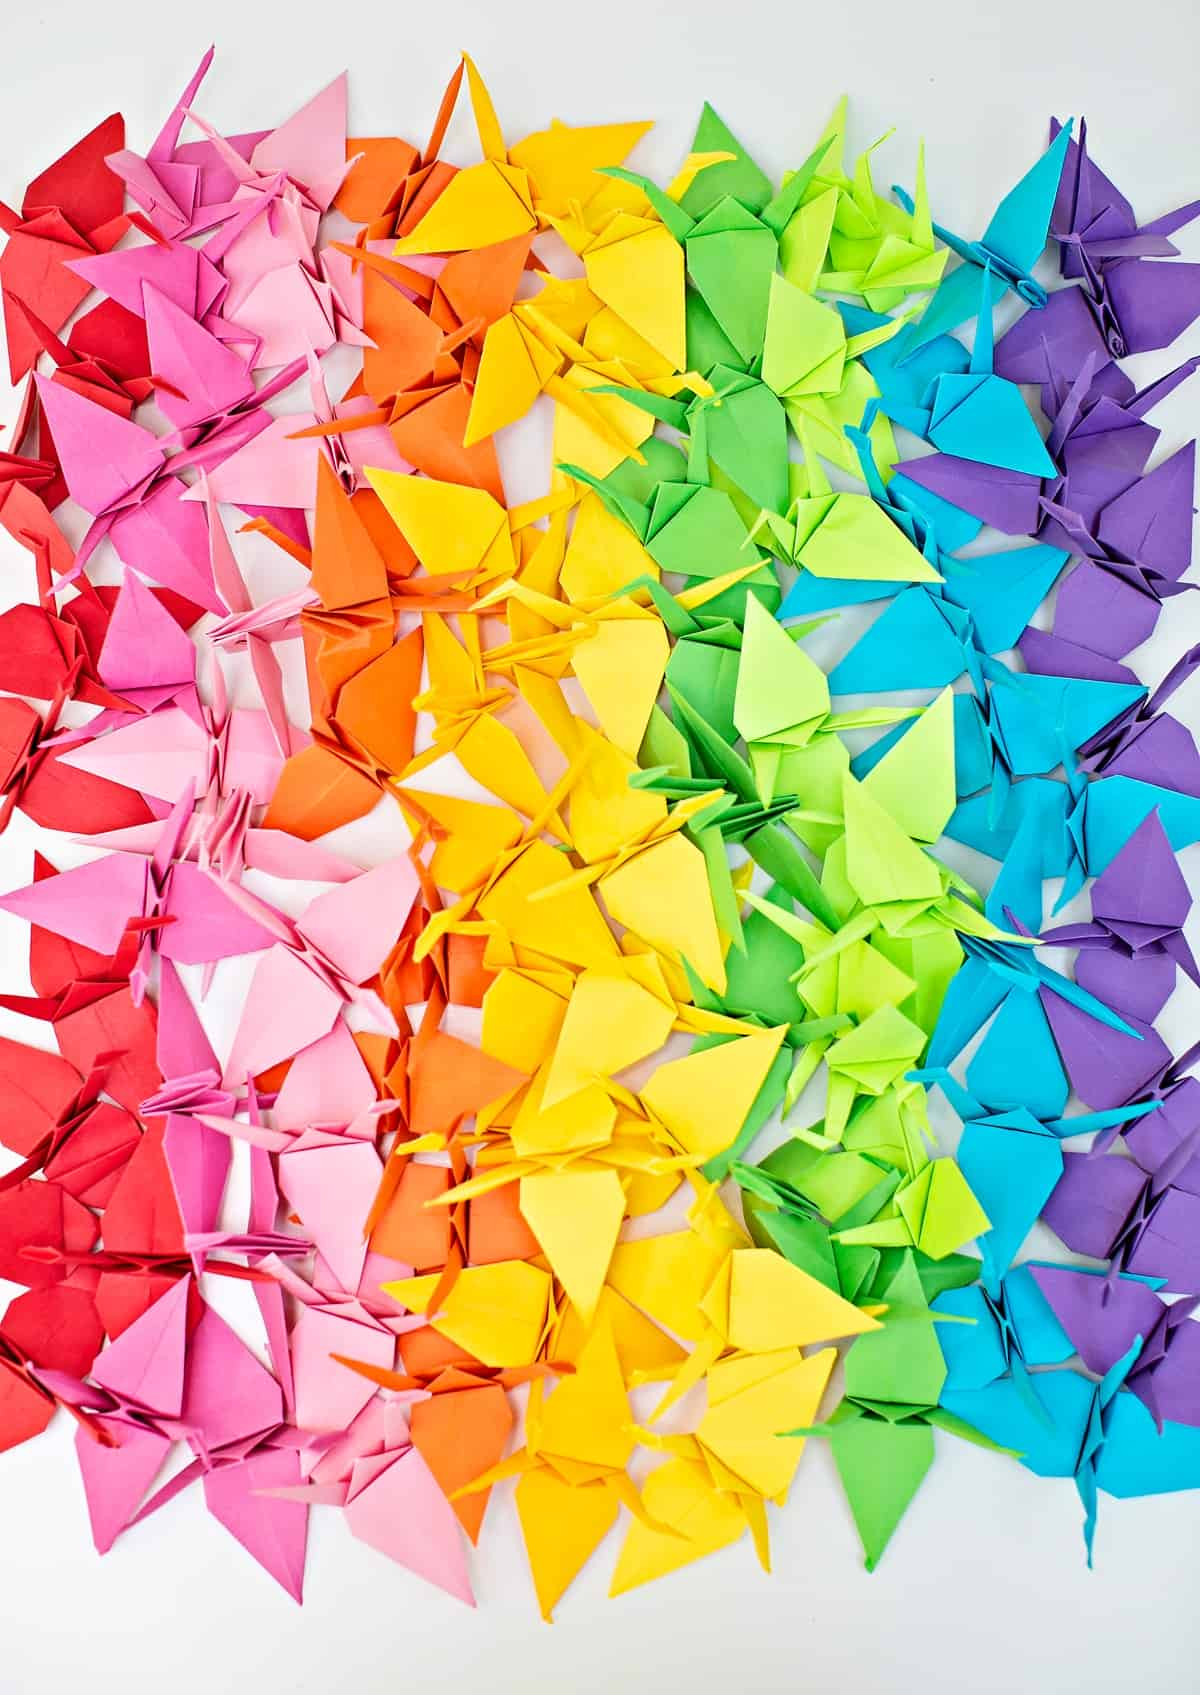 One million paper cranes project. Community project to show love and support during the coronavirus pandemic.